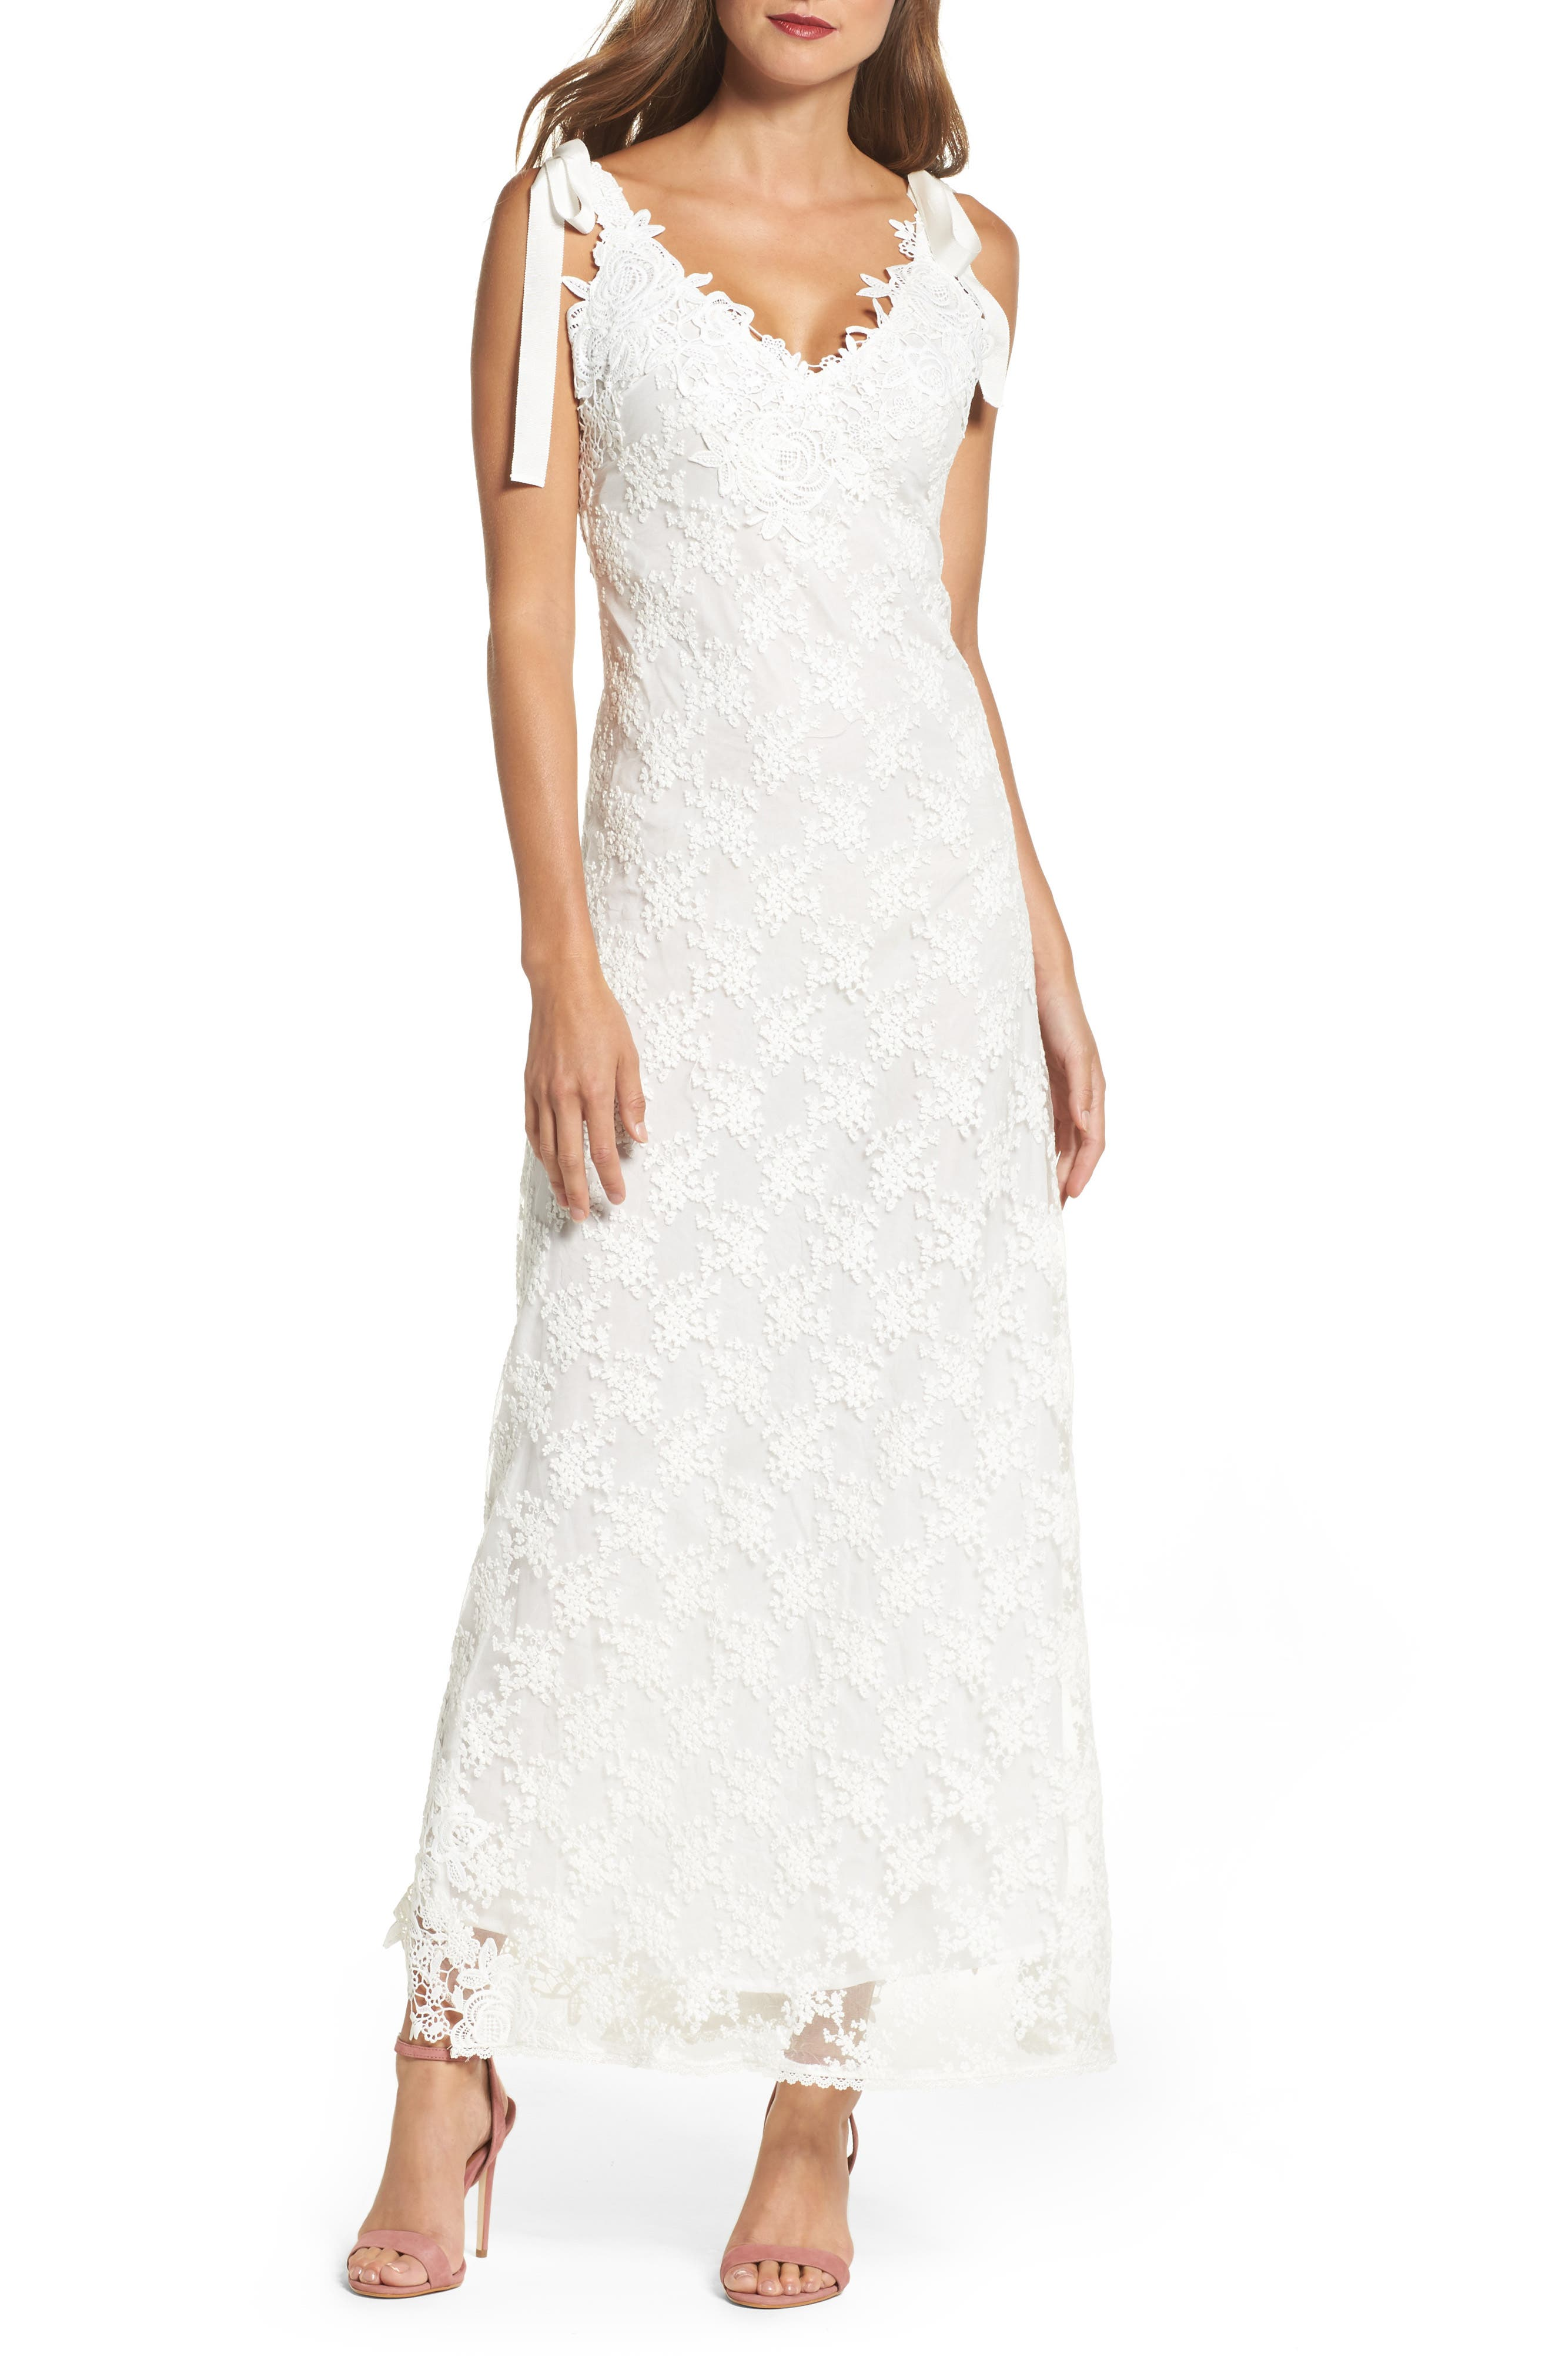 Foxiedox August Shoulder Tie Lace Maxi Dress